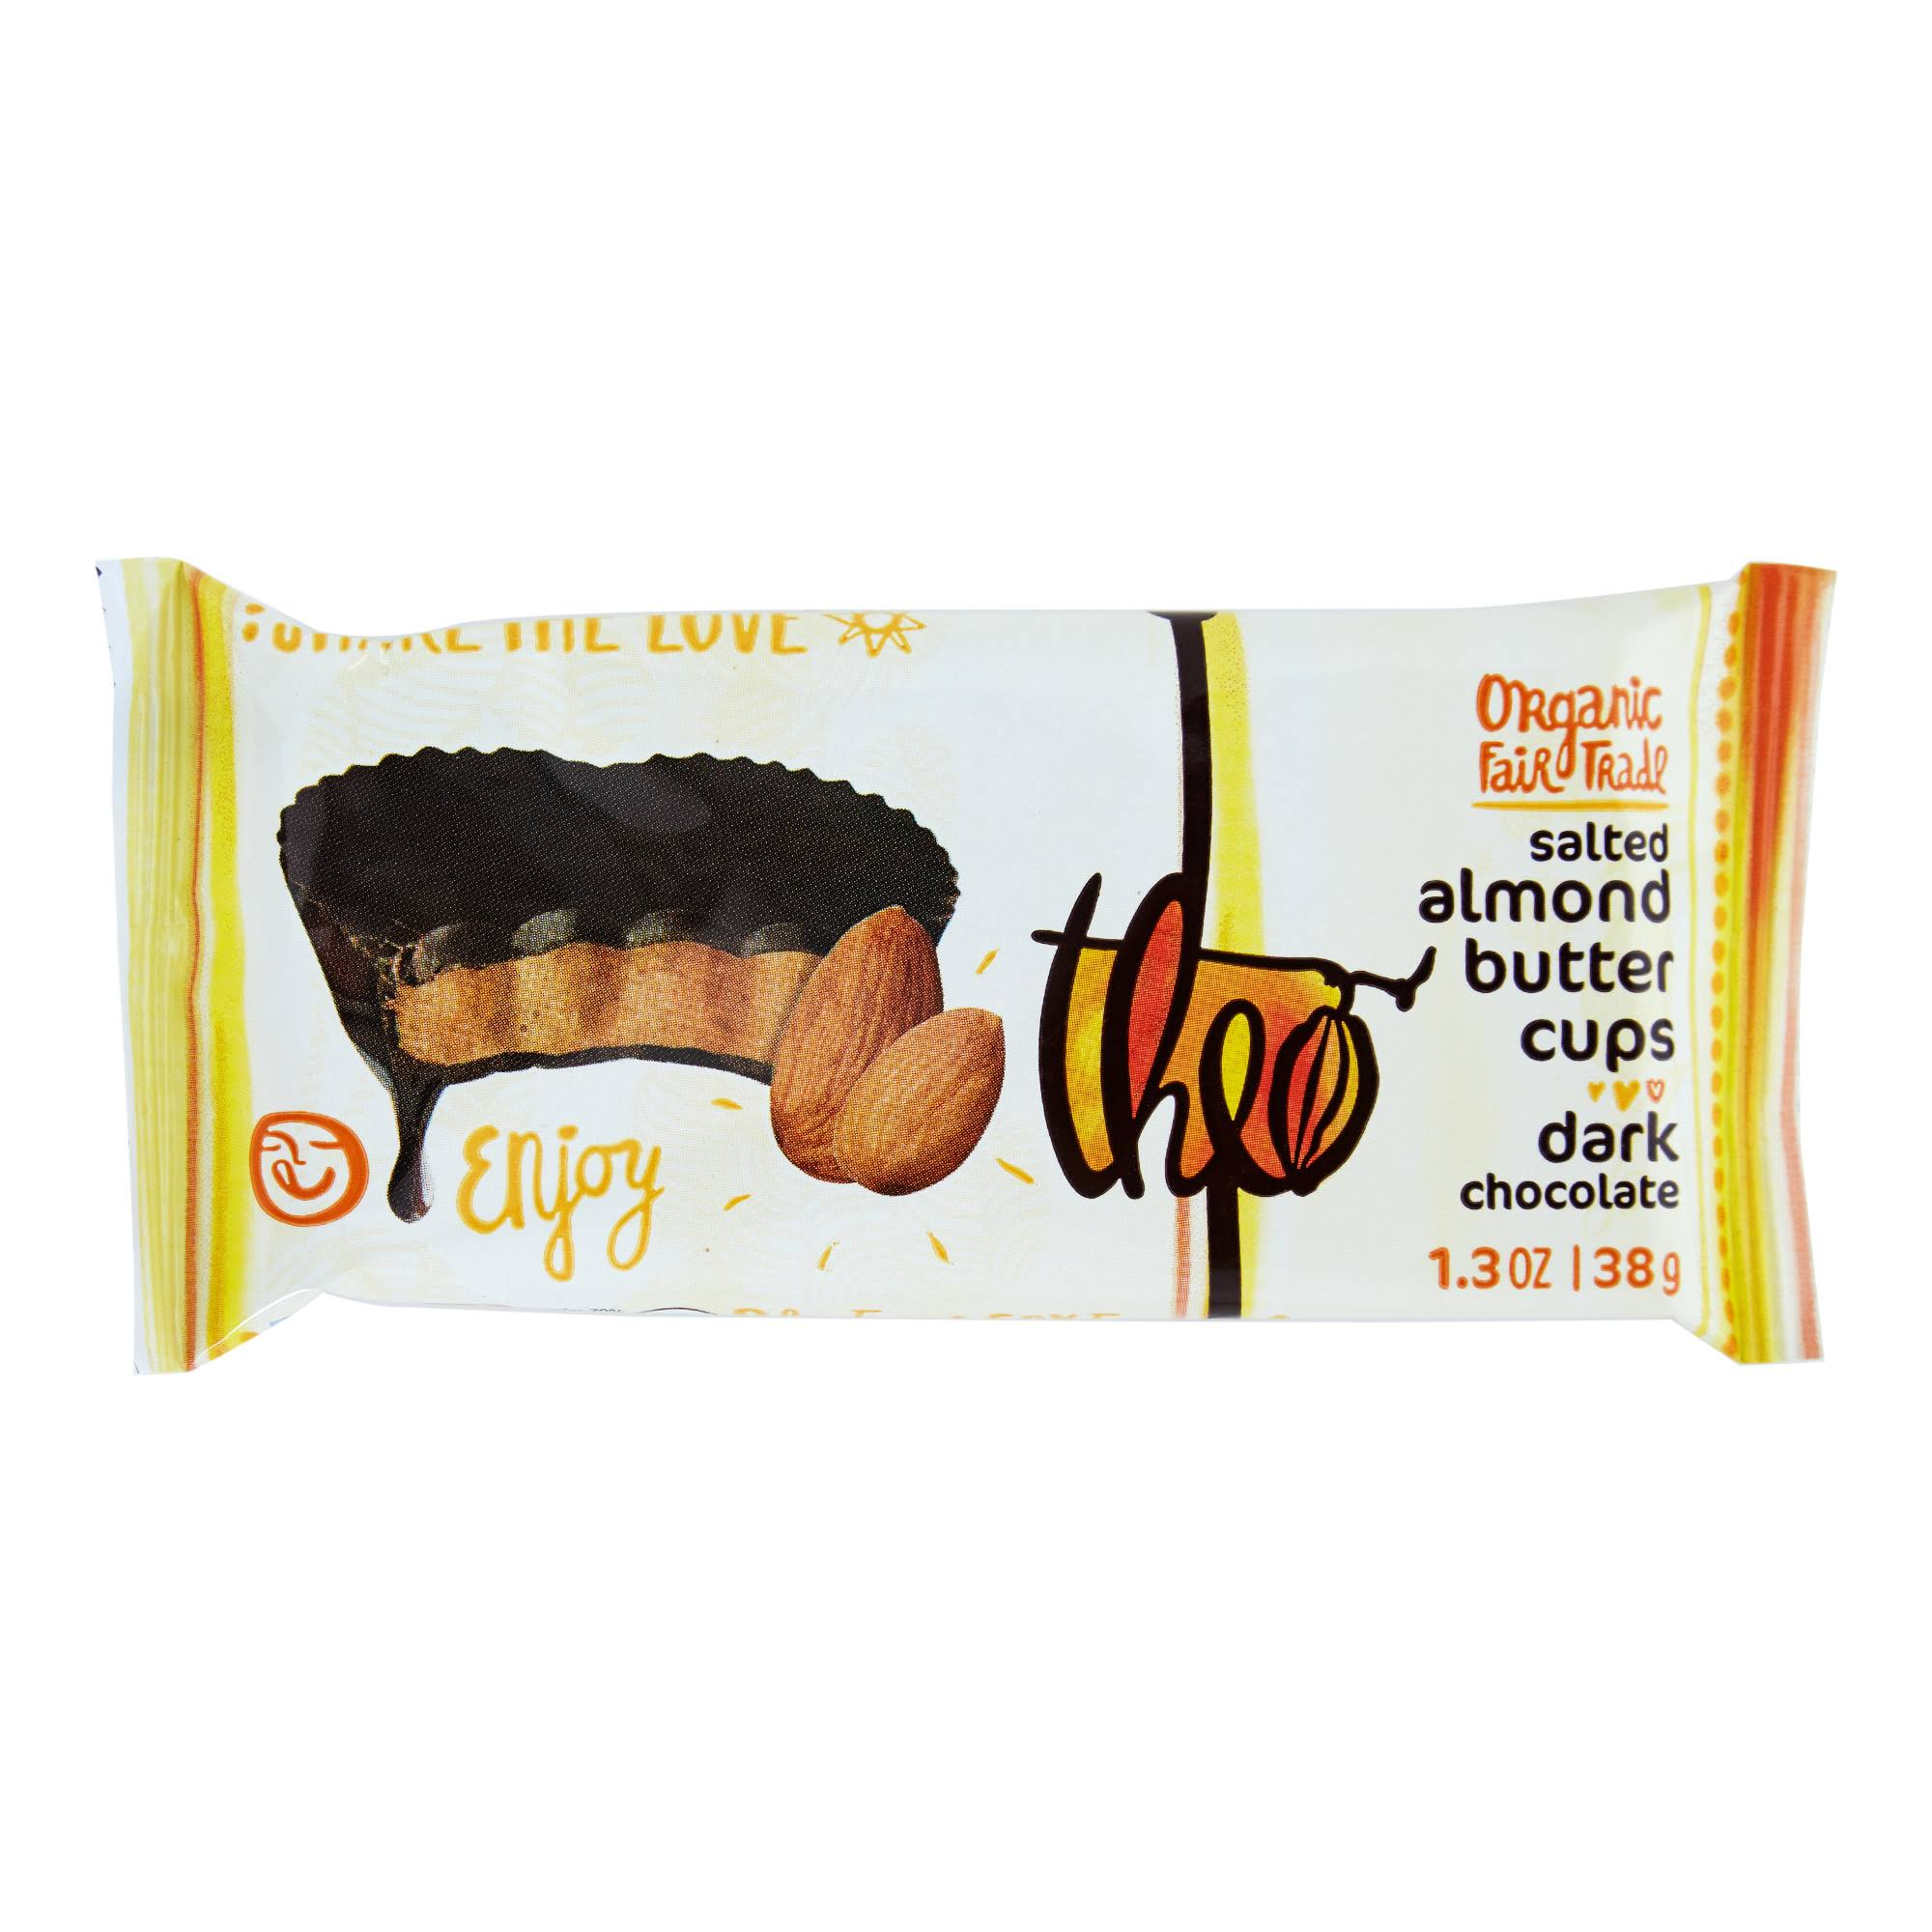 Theo Chocolate Salted Almond Butter Cups - Dark Chocolate, 38g